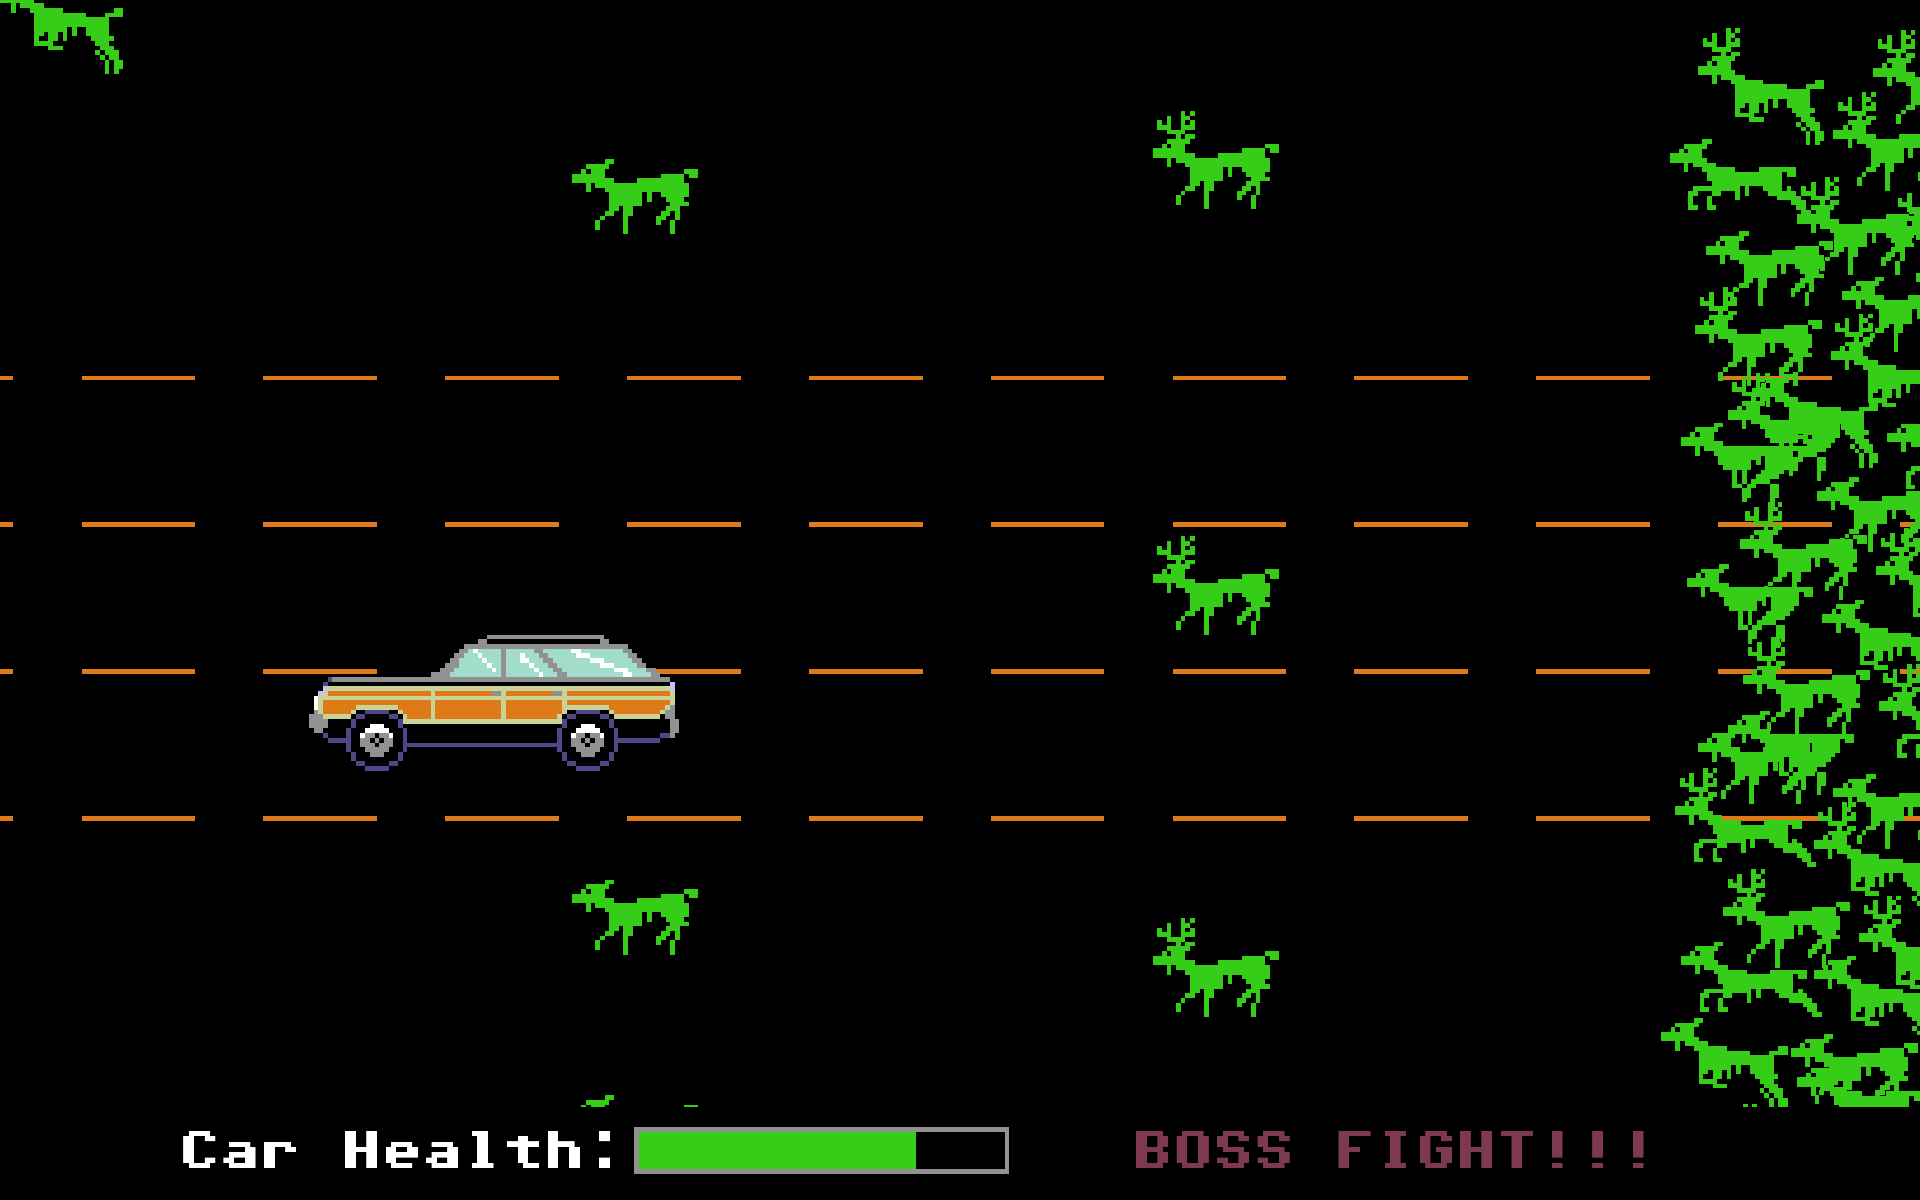 Screenshot of the car getting chased by a horde of zombie animals.